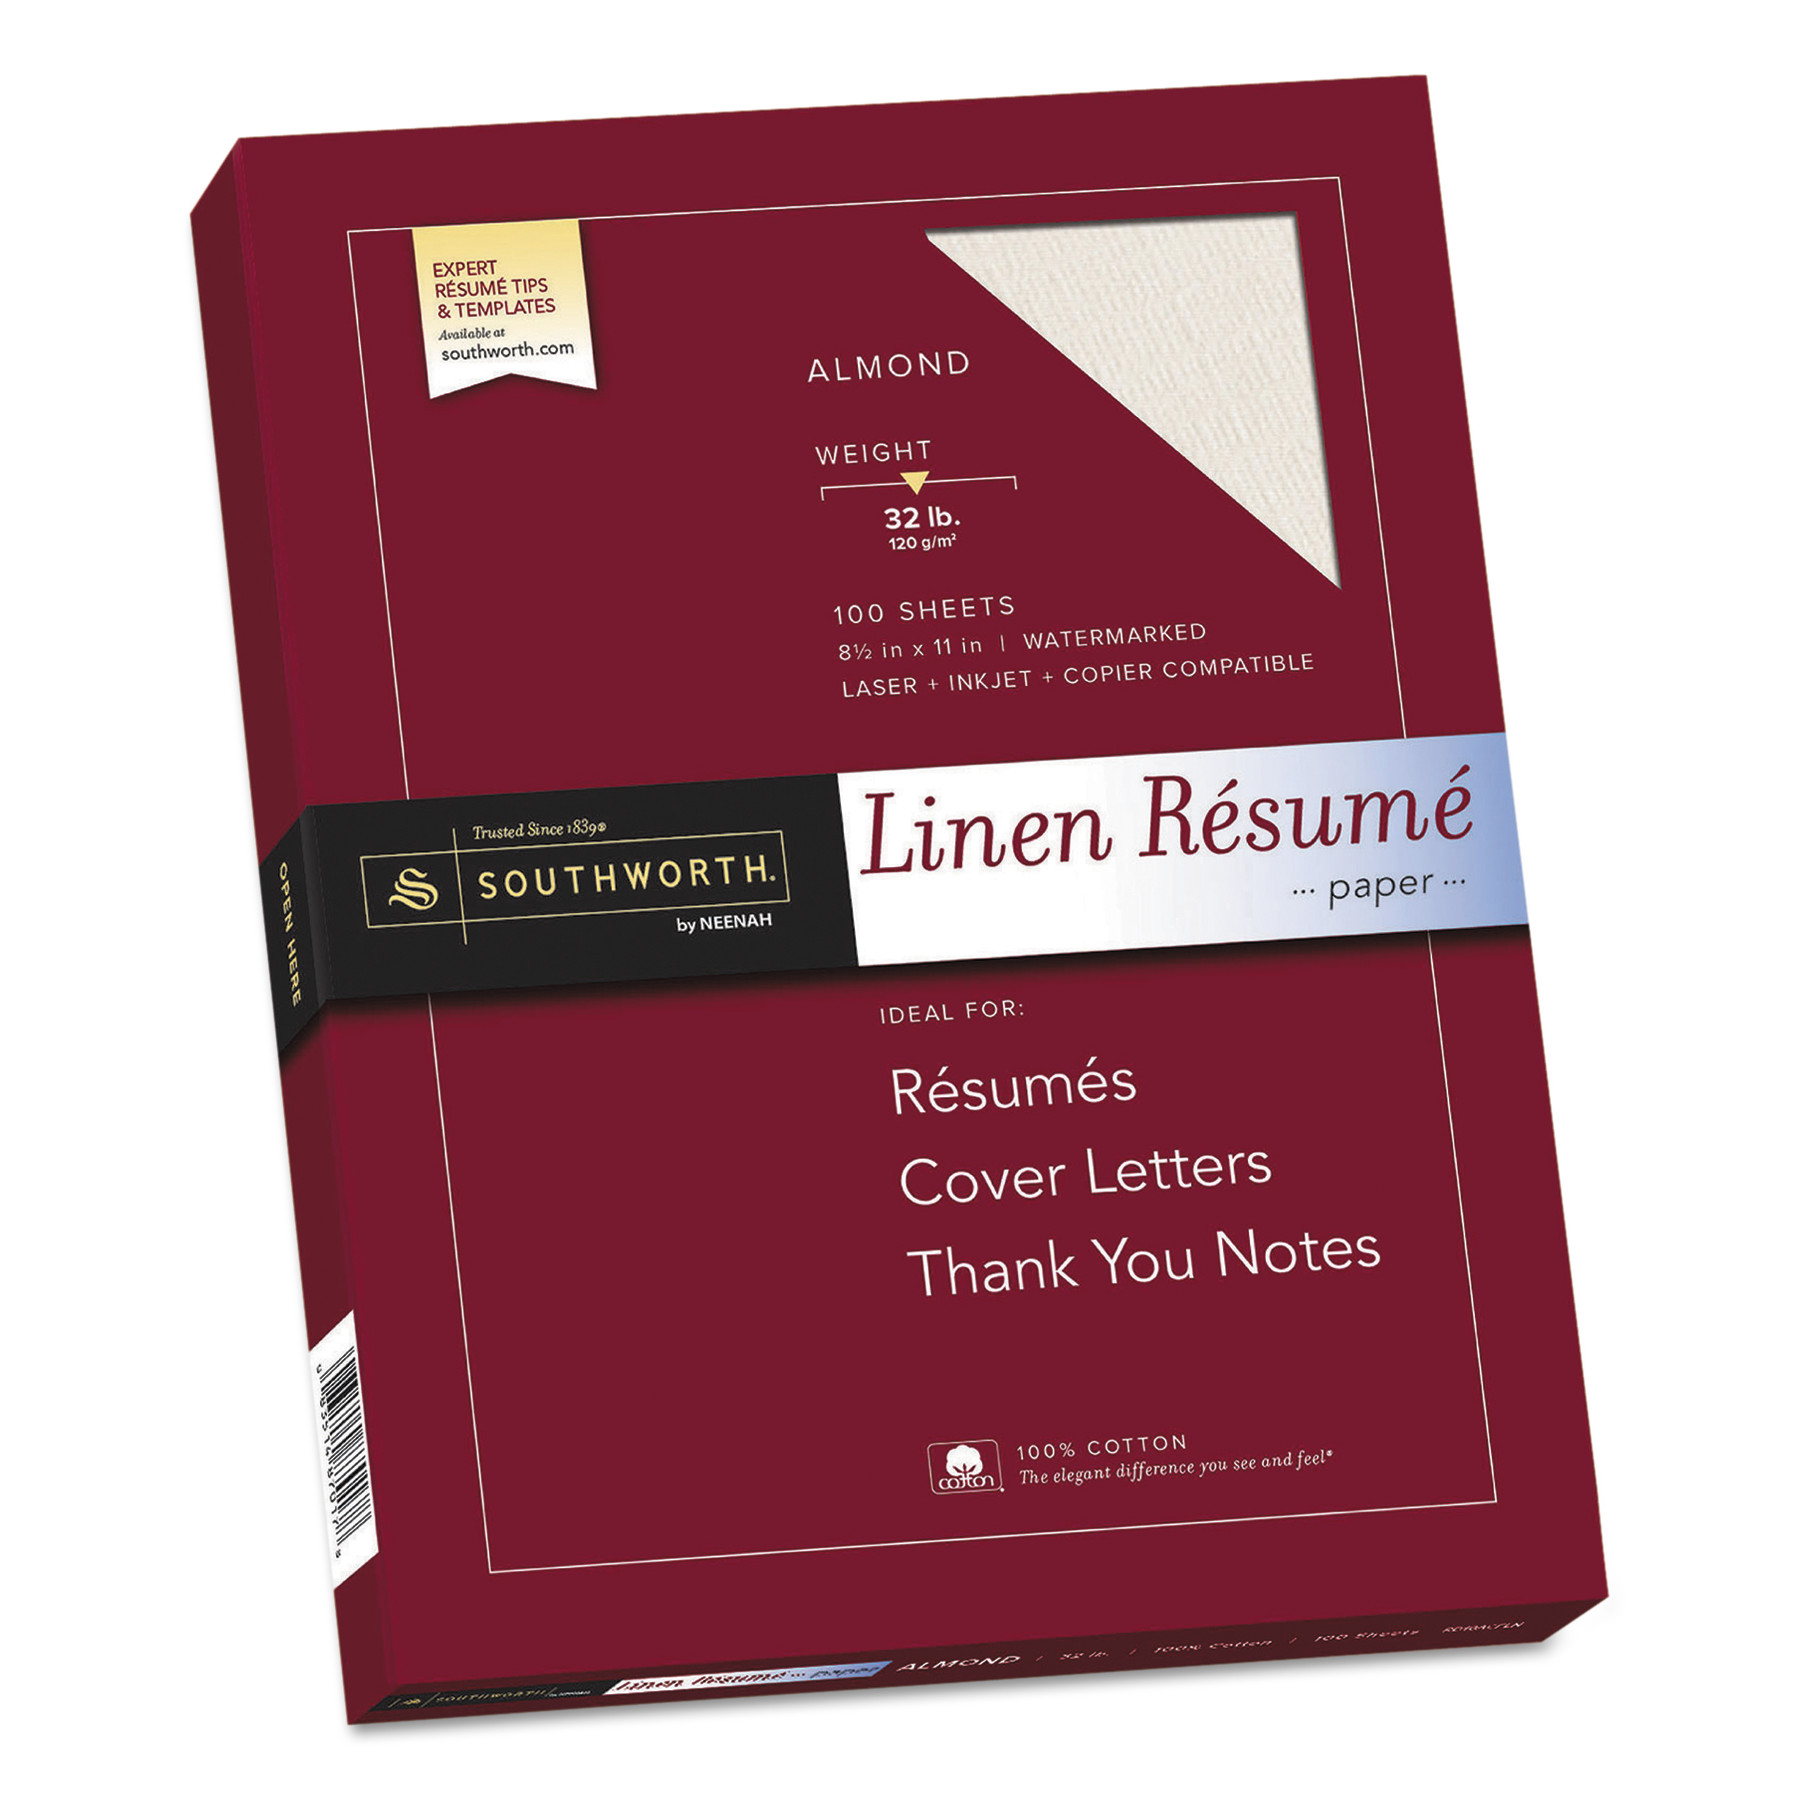 Southworth 100% Cotton Linen Resume Paper, 32lb, 8 1/2 x 11, Almond, 100 Sheets -SOURD18ACFLN